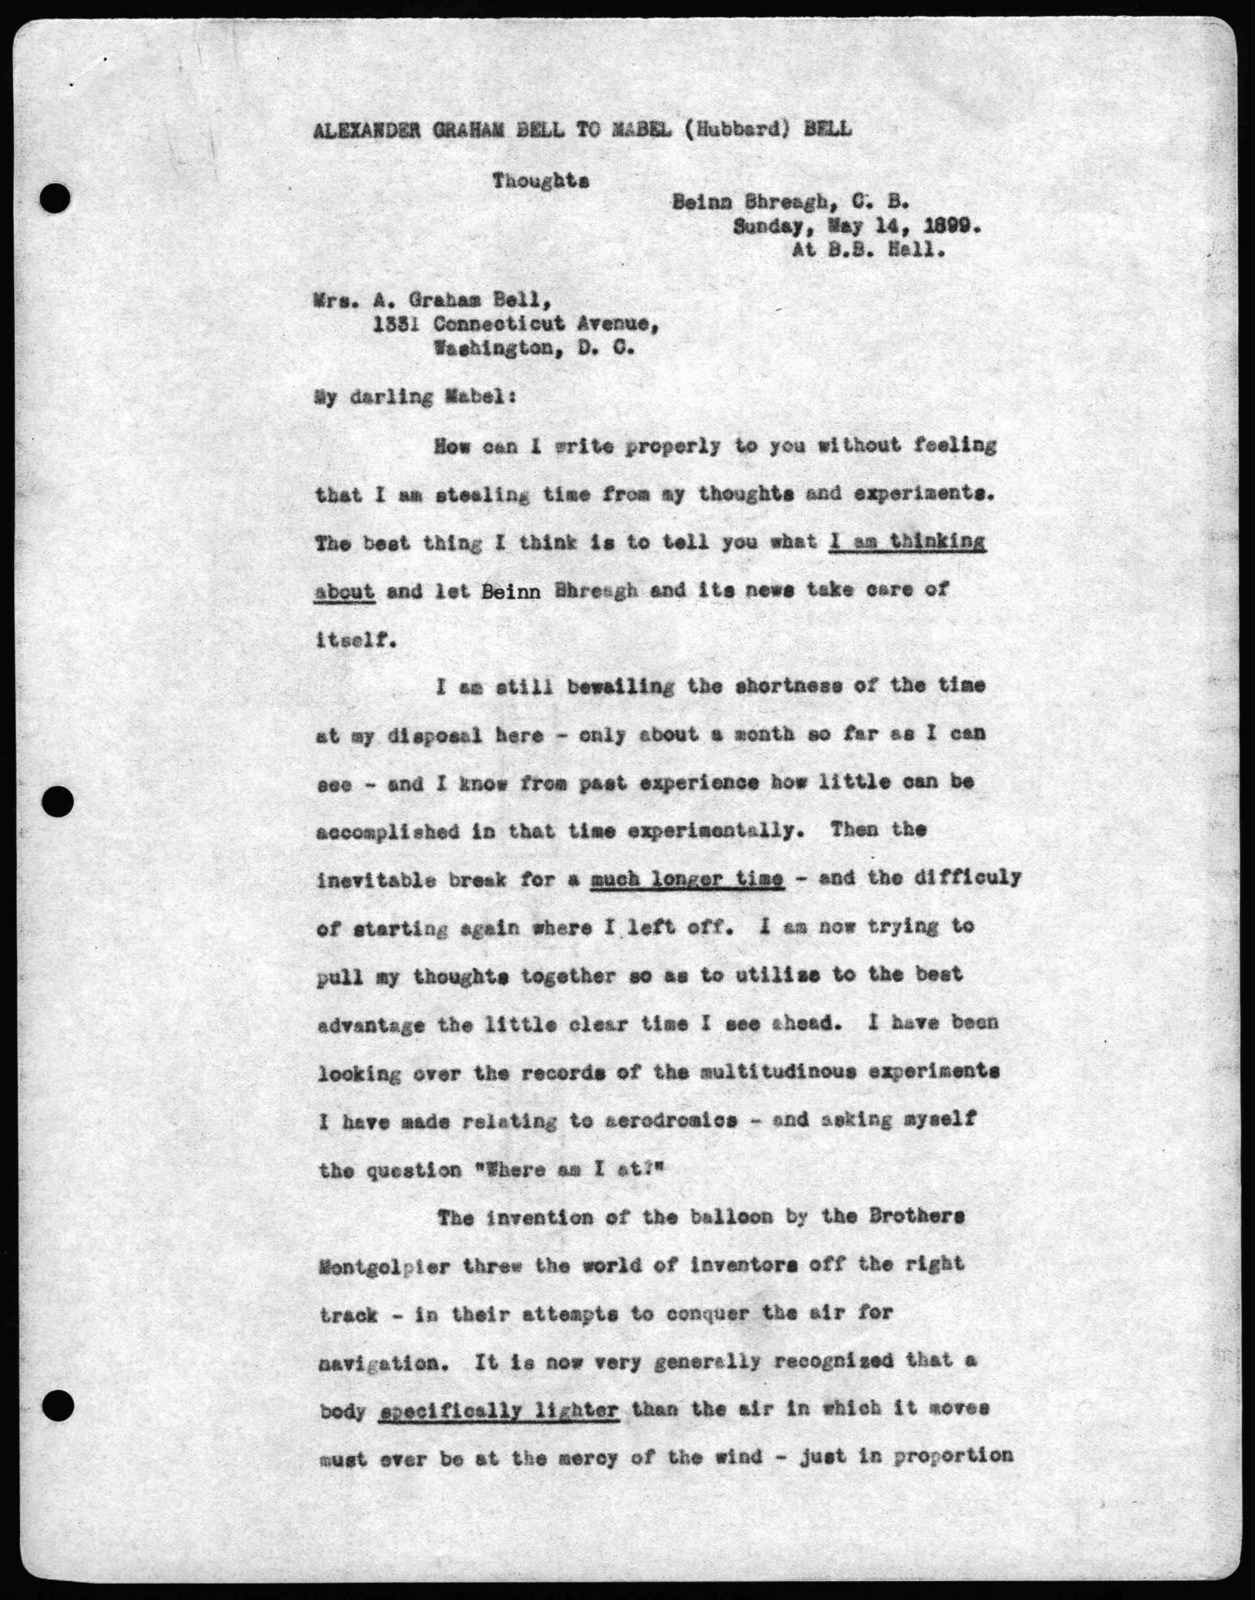 Letter from Alexander Graham Bell to Mabel Hubbard Bell, May 14, 1899